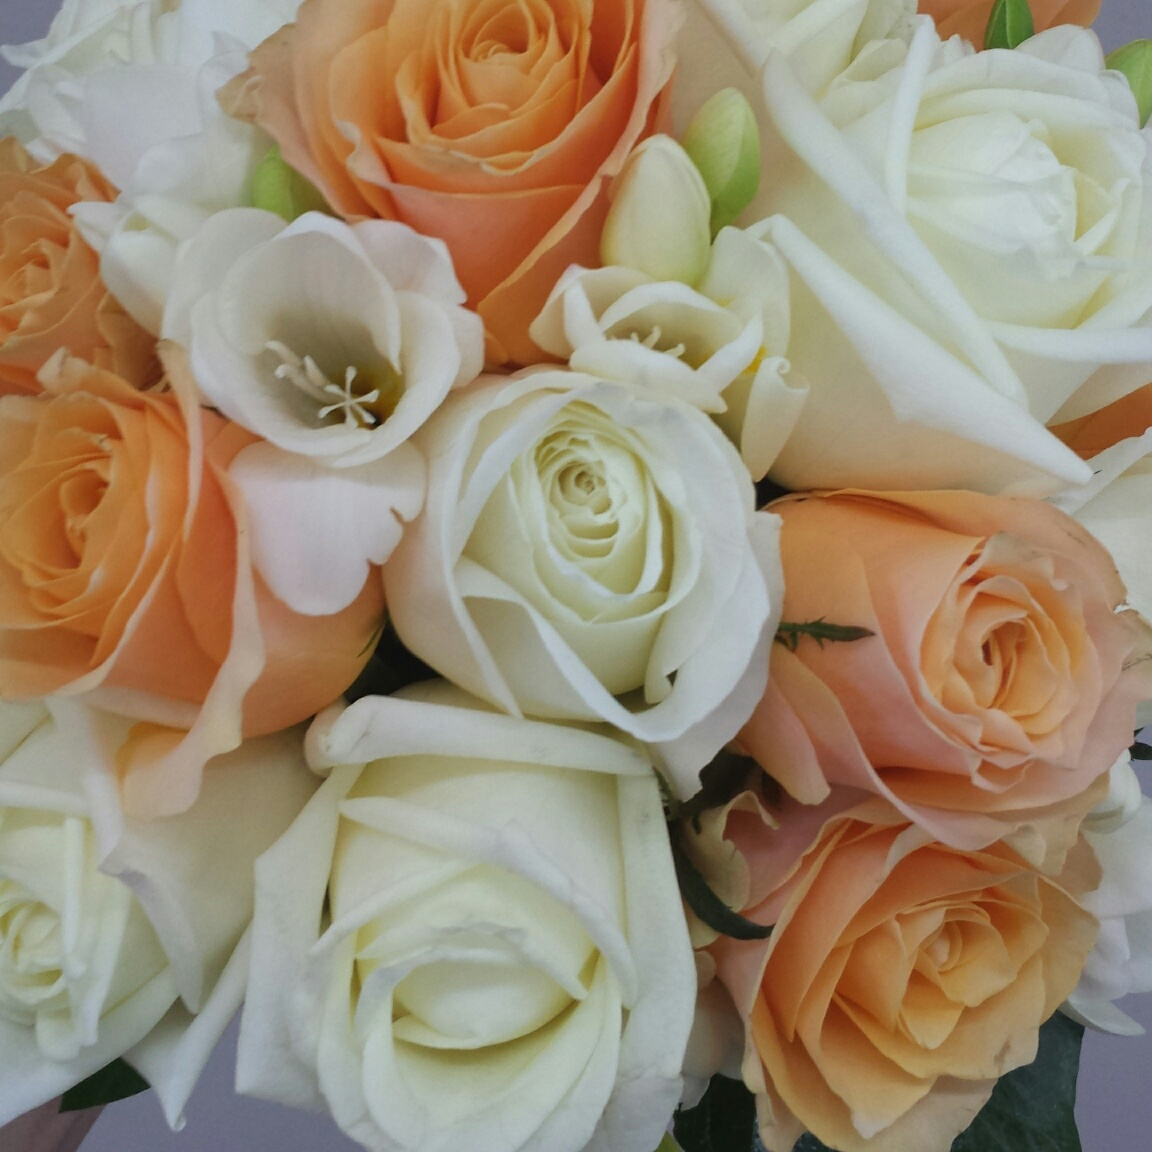 apricot and white roses with freesia